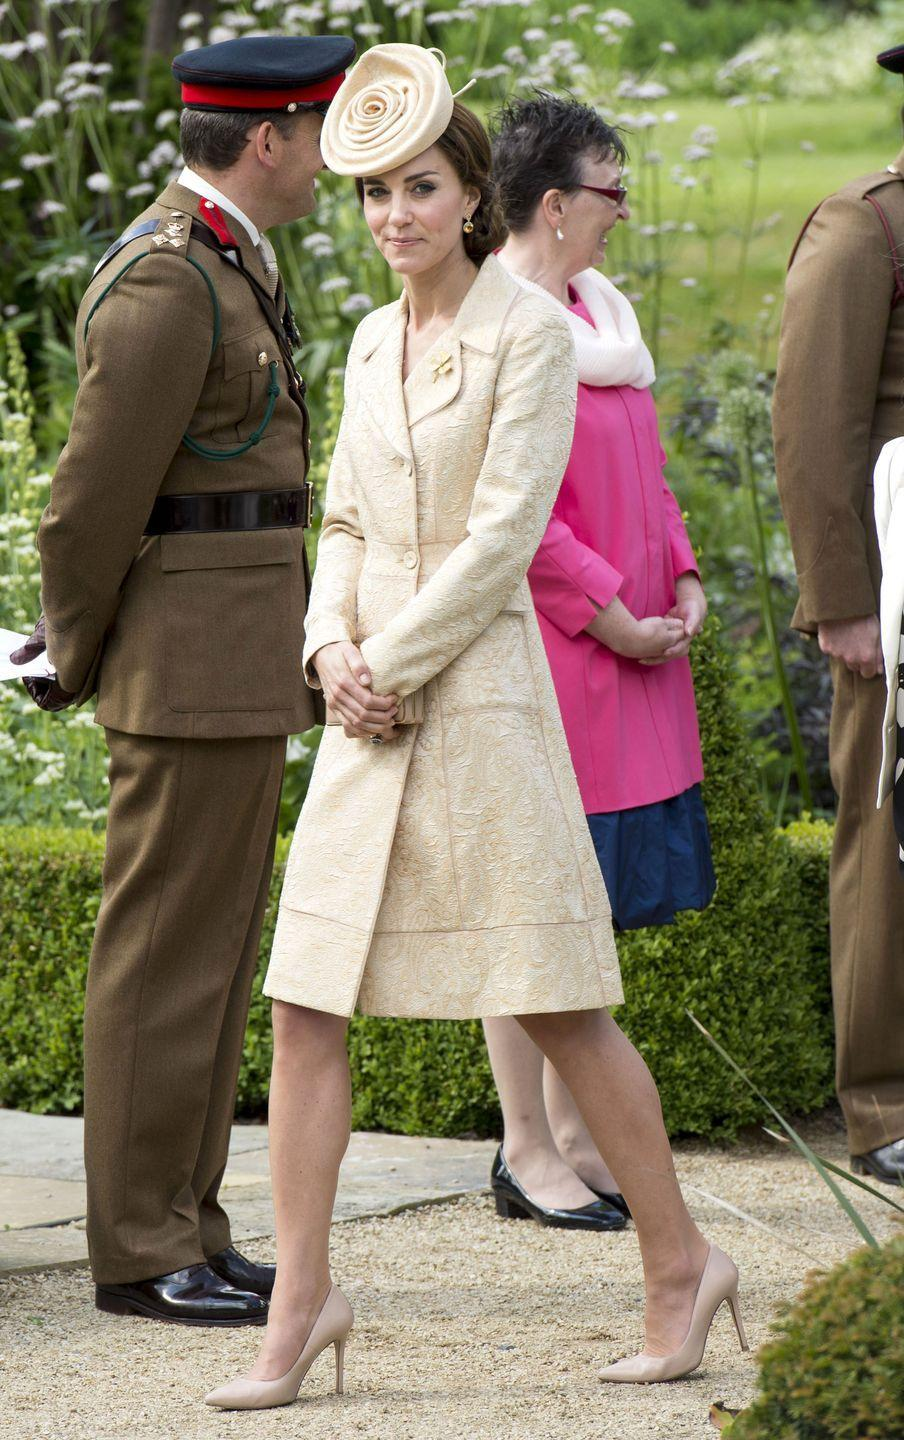 <p>Kate Middleton attends a garden party in Northern Ireland in a beige coat dress by Day Birger et Mikkelsen with matching pumps and a rosette hat by Lock & Co.</p>